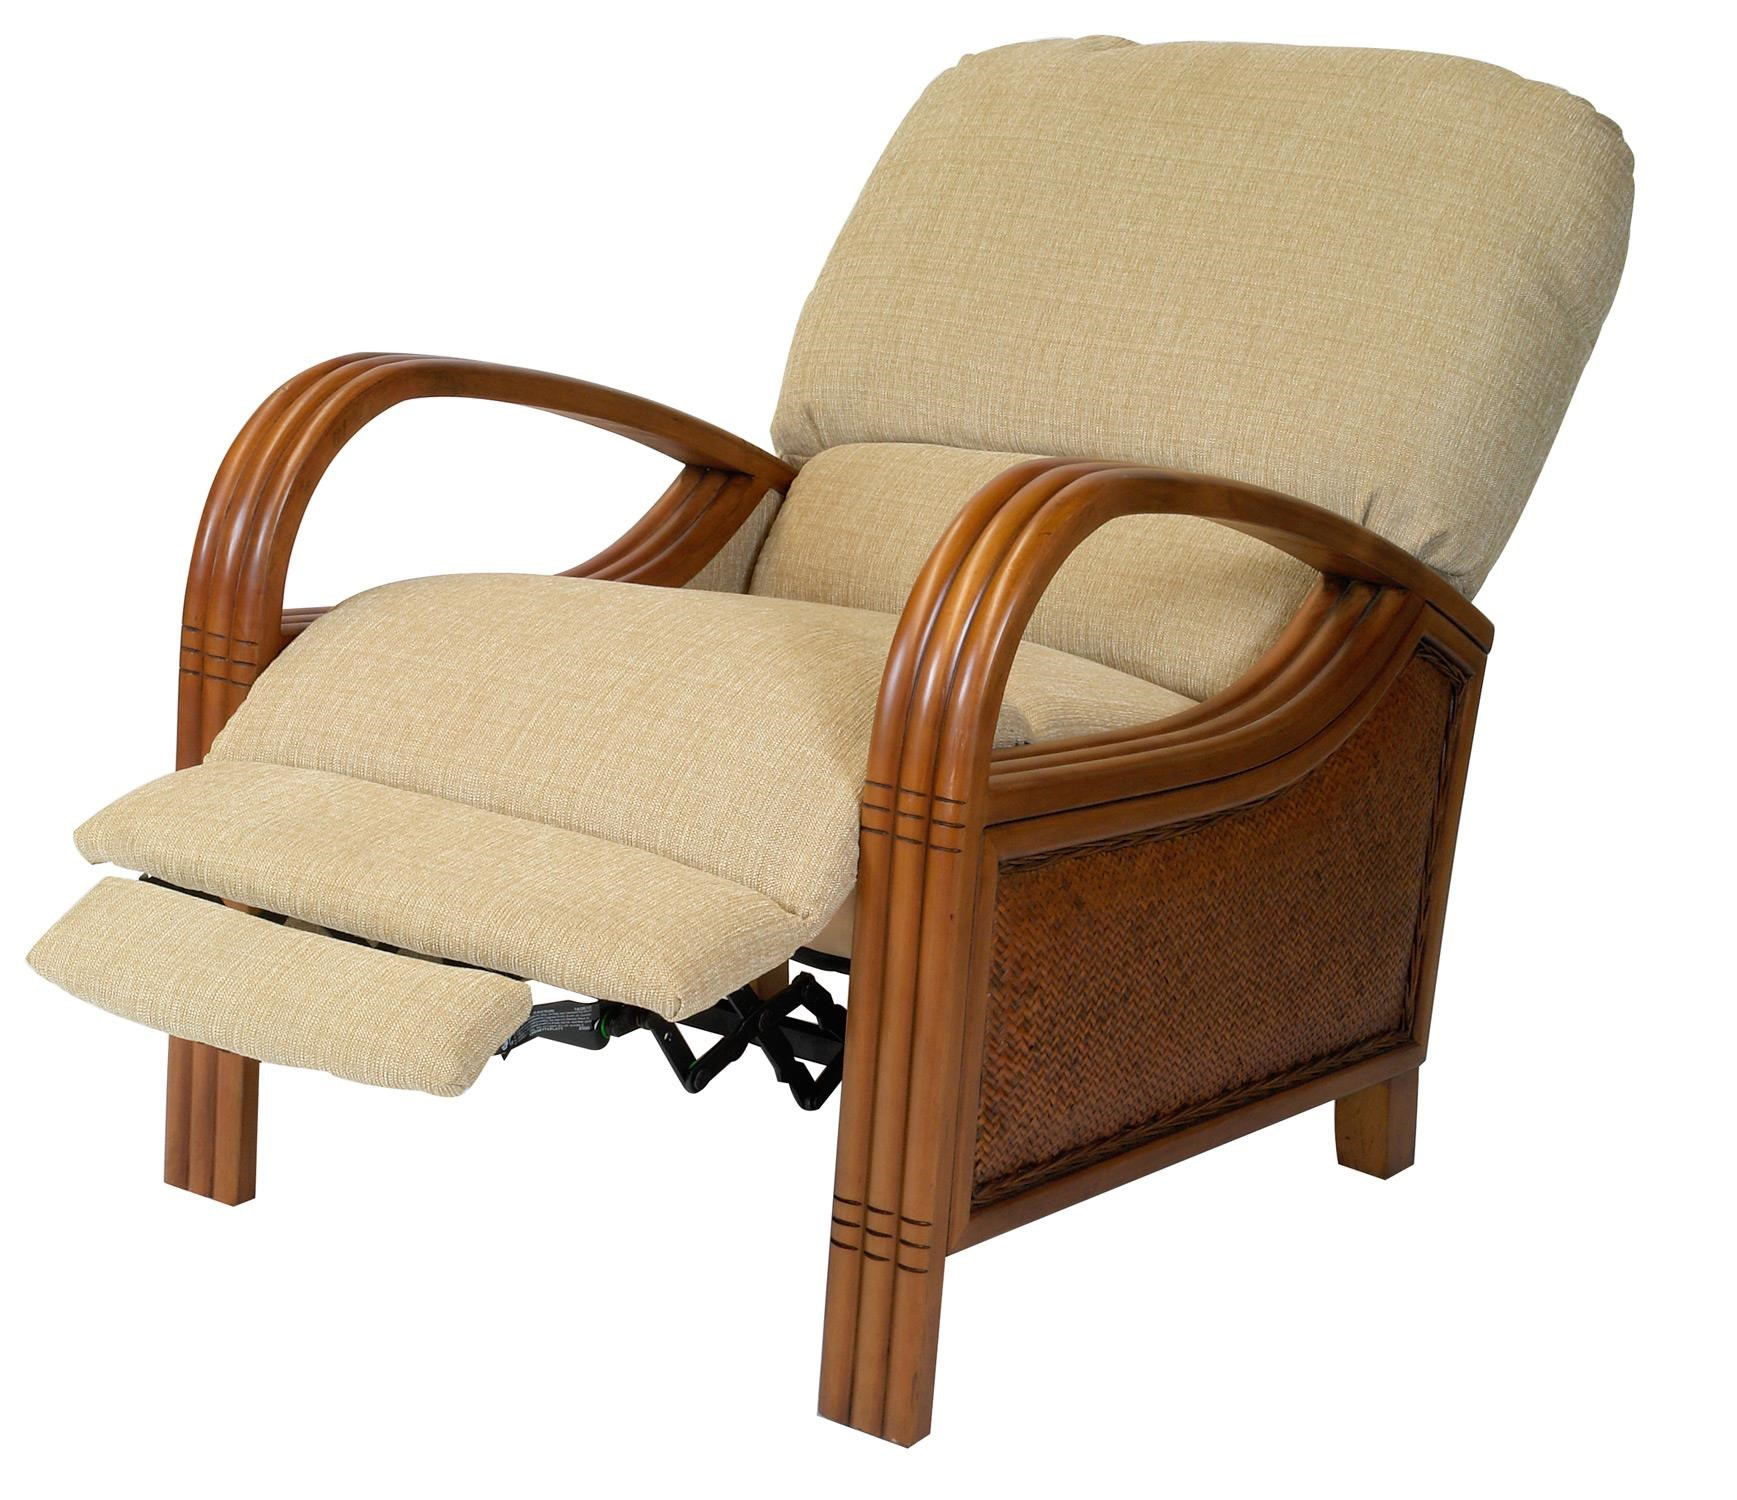 Bailey Recliner By Synergy Home Furnishings